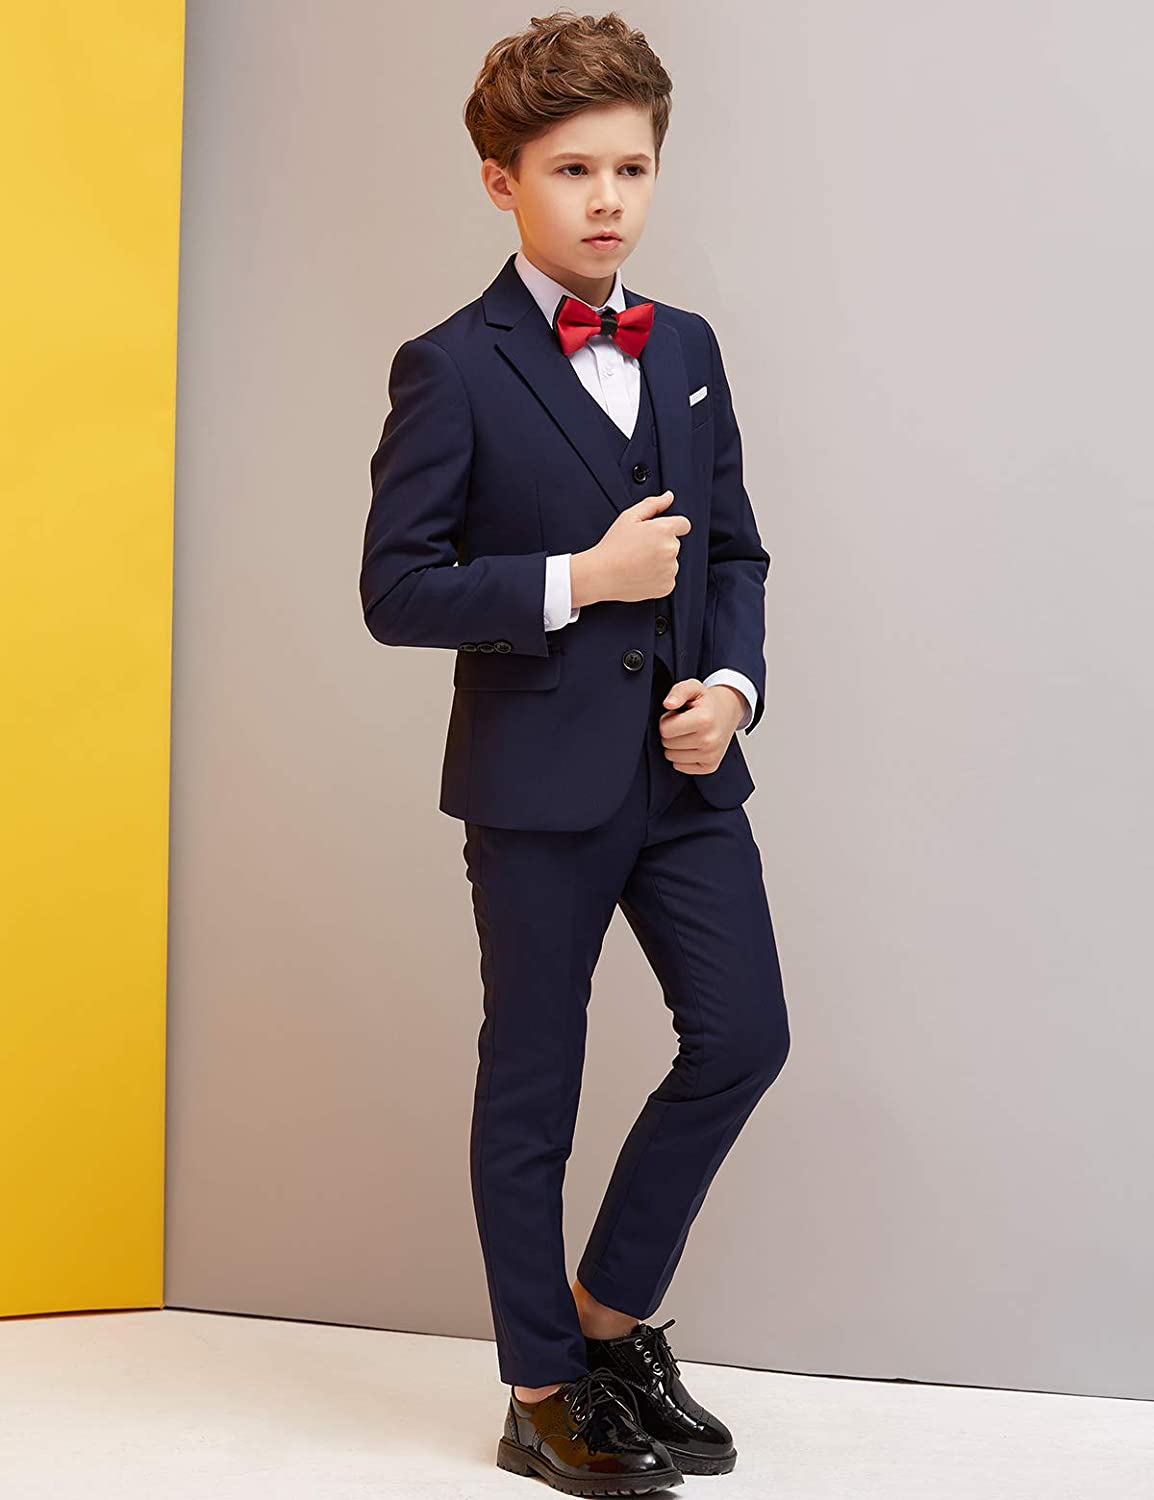 Navy Blue Suit for Wedding Suits Set ELPA ELPA Boys Suits Slim Fit Formal Dress Suit 6 Piece Teen Black Suit